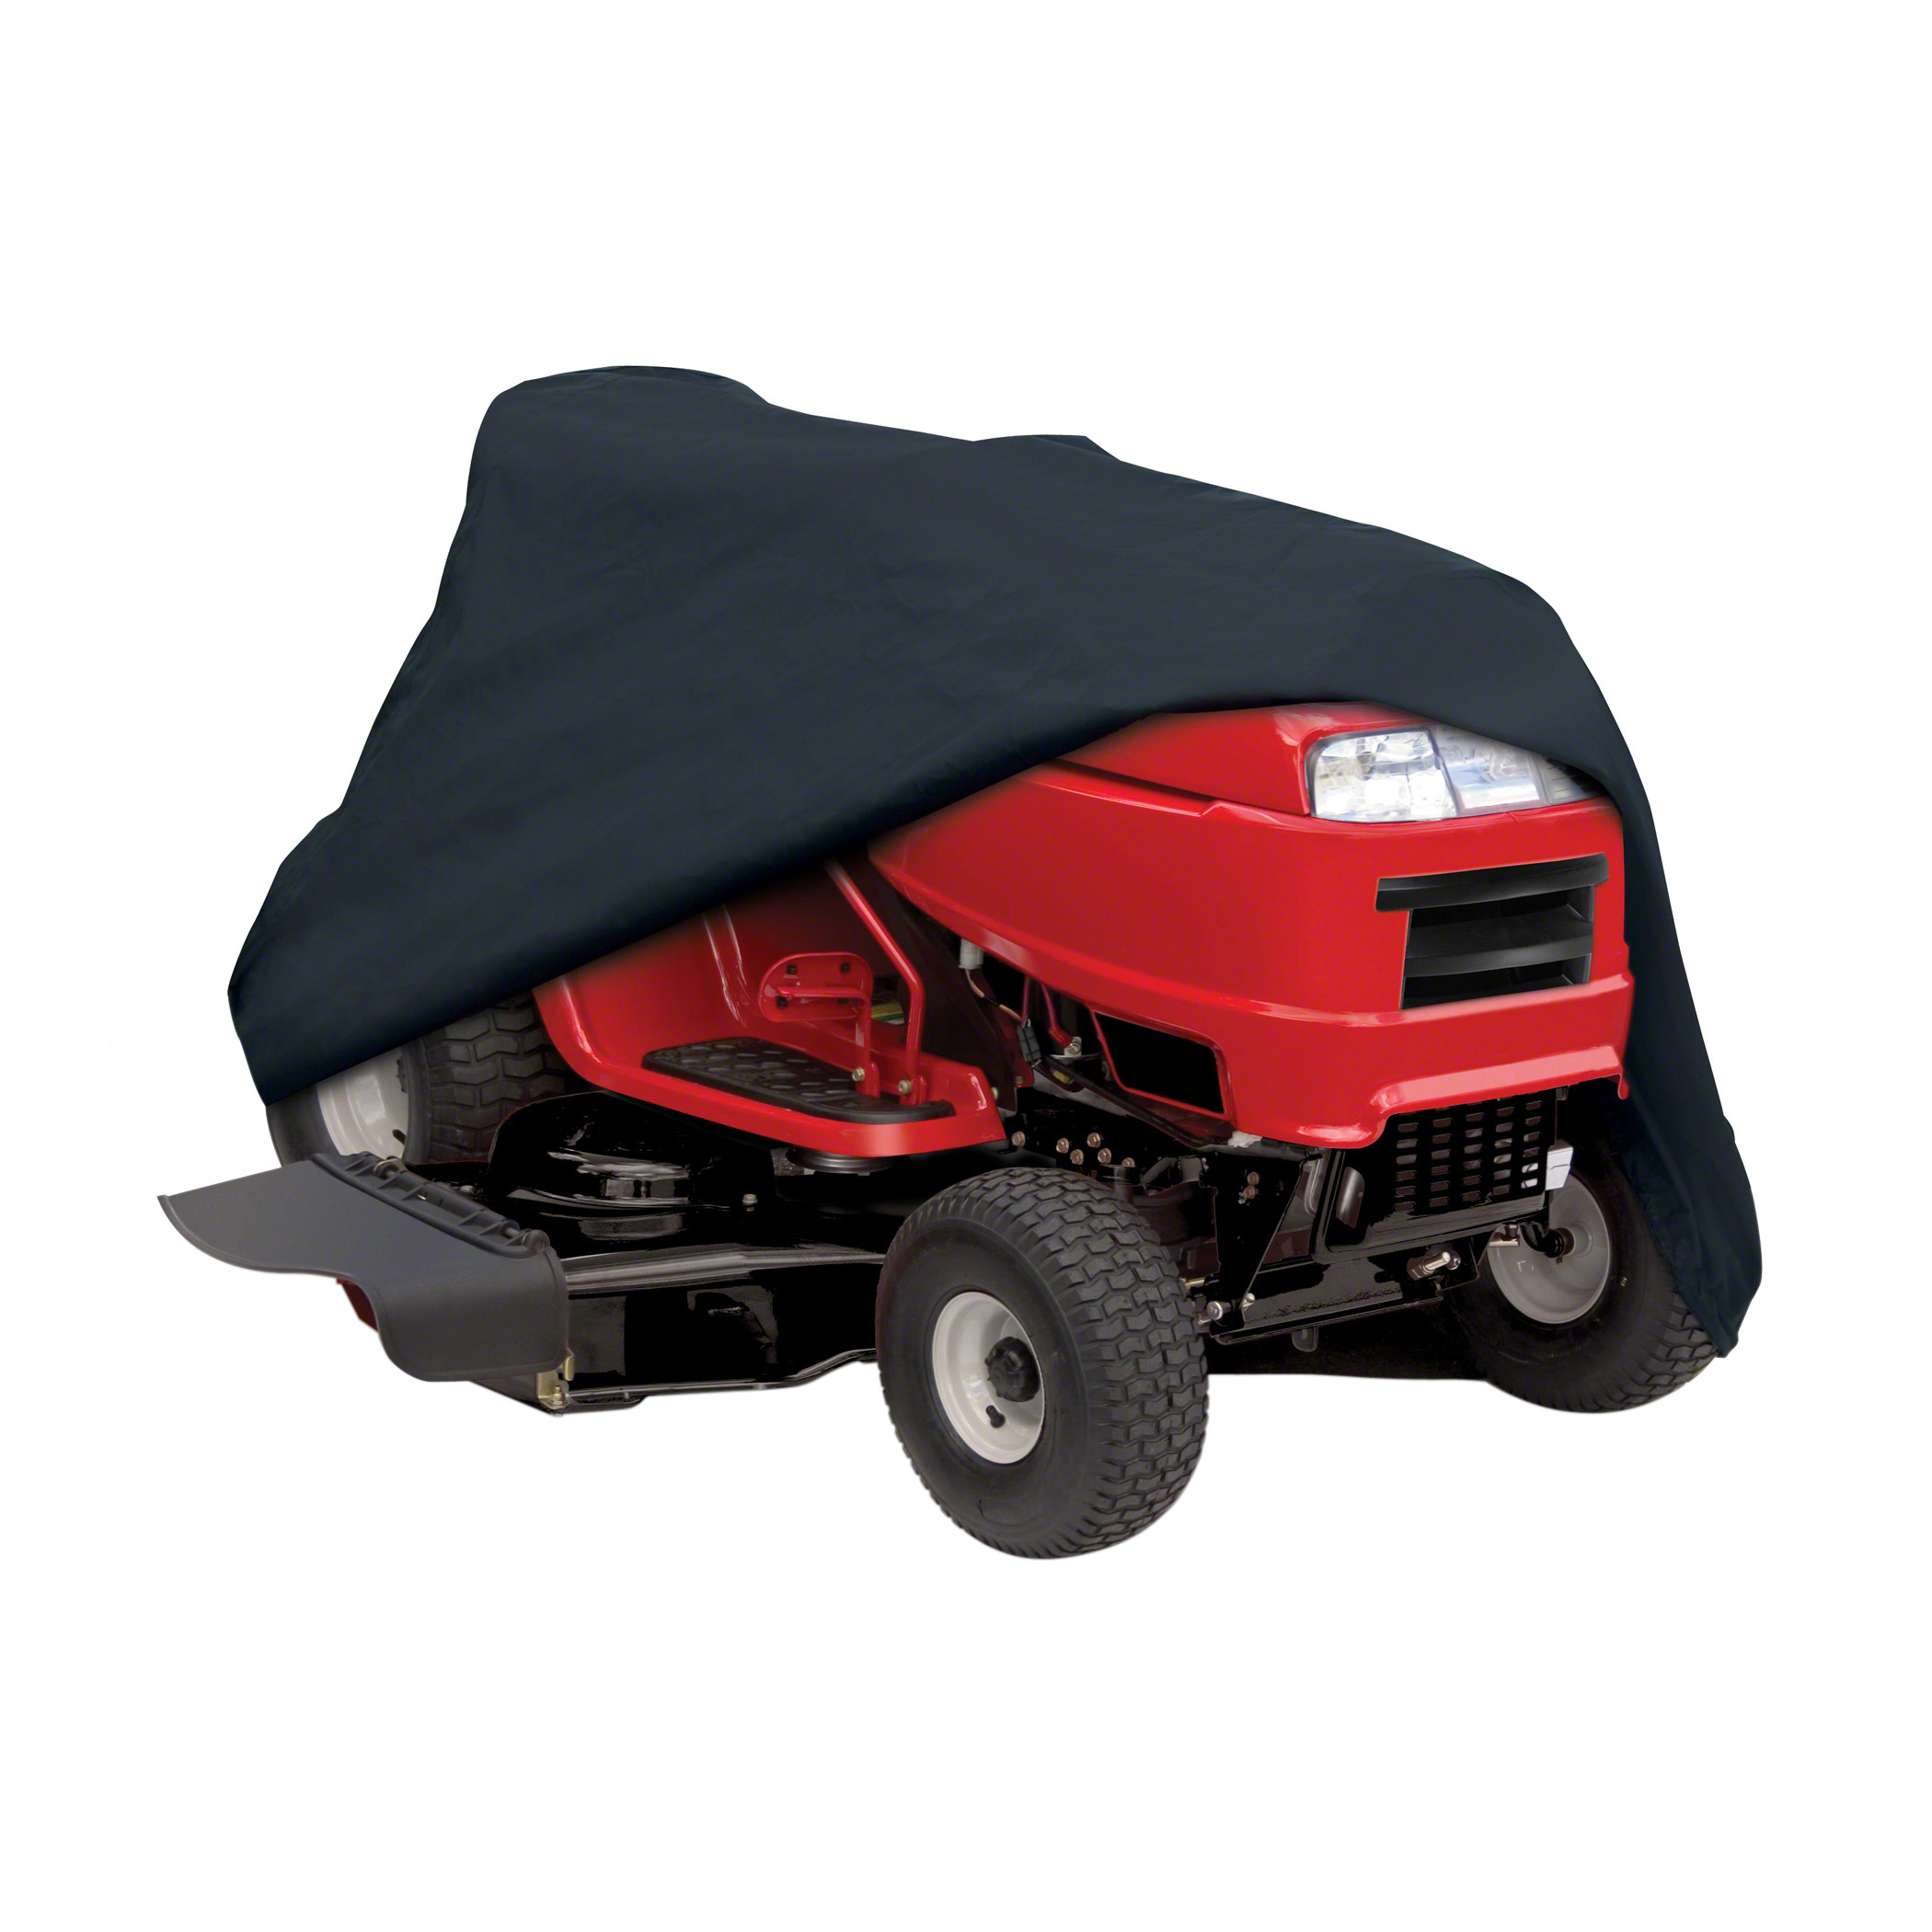 "Classic Accessories Black Riding Lawn Mower Tractor Storage Cover, Fits Lawn Tractors with Decks 54""W by Classic Accessories"